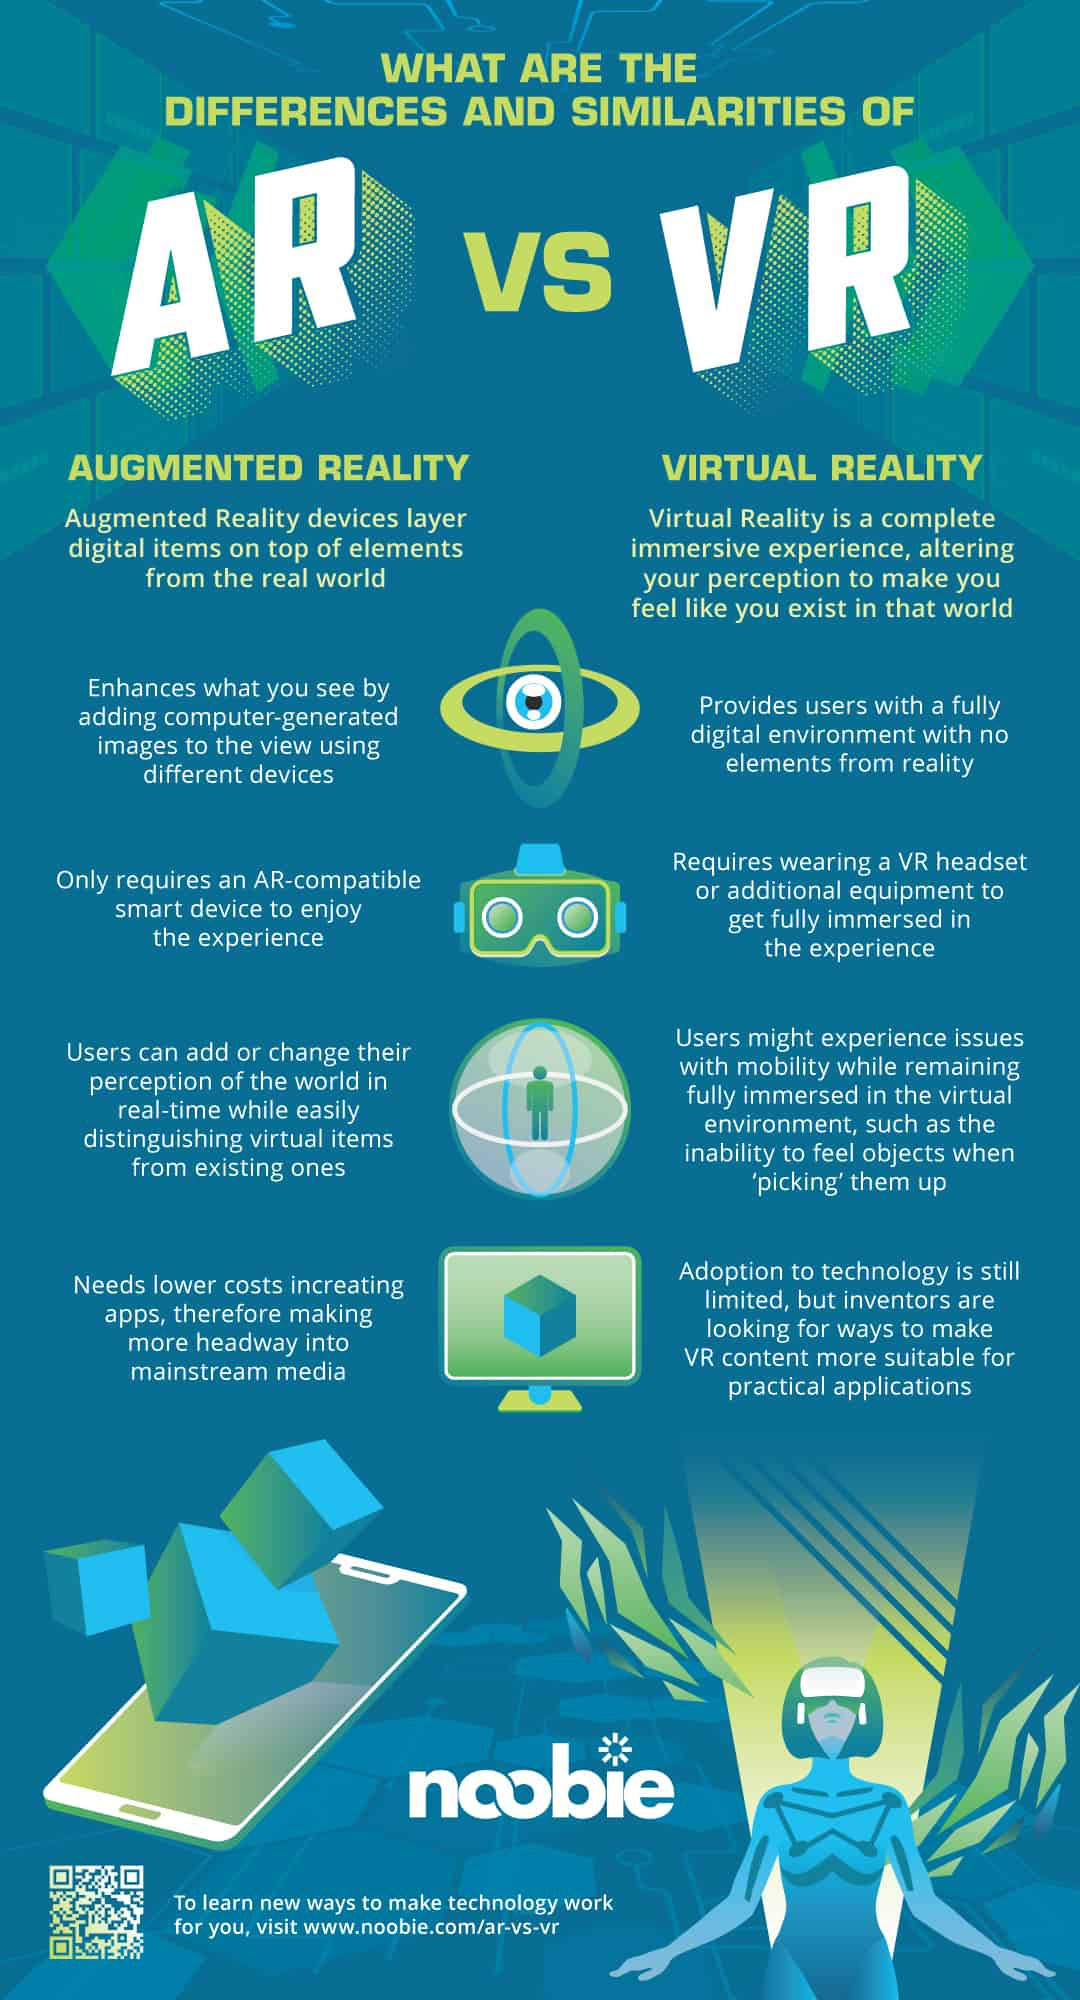 infographic | What Is the Difference Between AR and VR? | Best of 2018 on Noobie